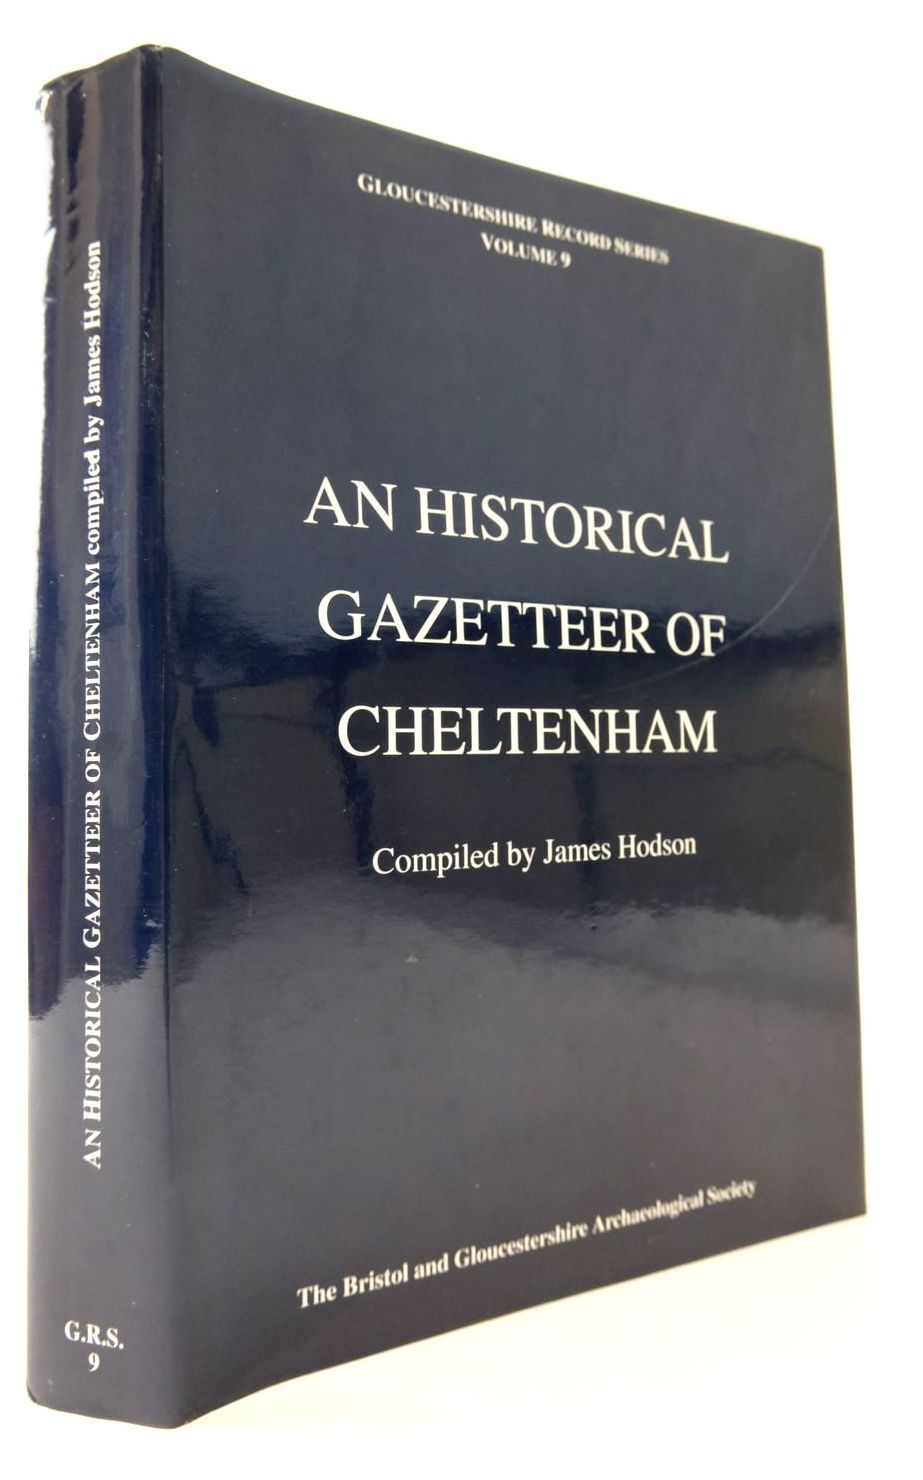 Photo of AN HISTORICAL GAZETTEER OF CHELTENHAM written by Hodson, James published by Bristol and Gloucestershire Archaeological Society (STOCK CODE: 2133259)  for sale by Stella & Rose's Books